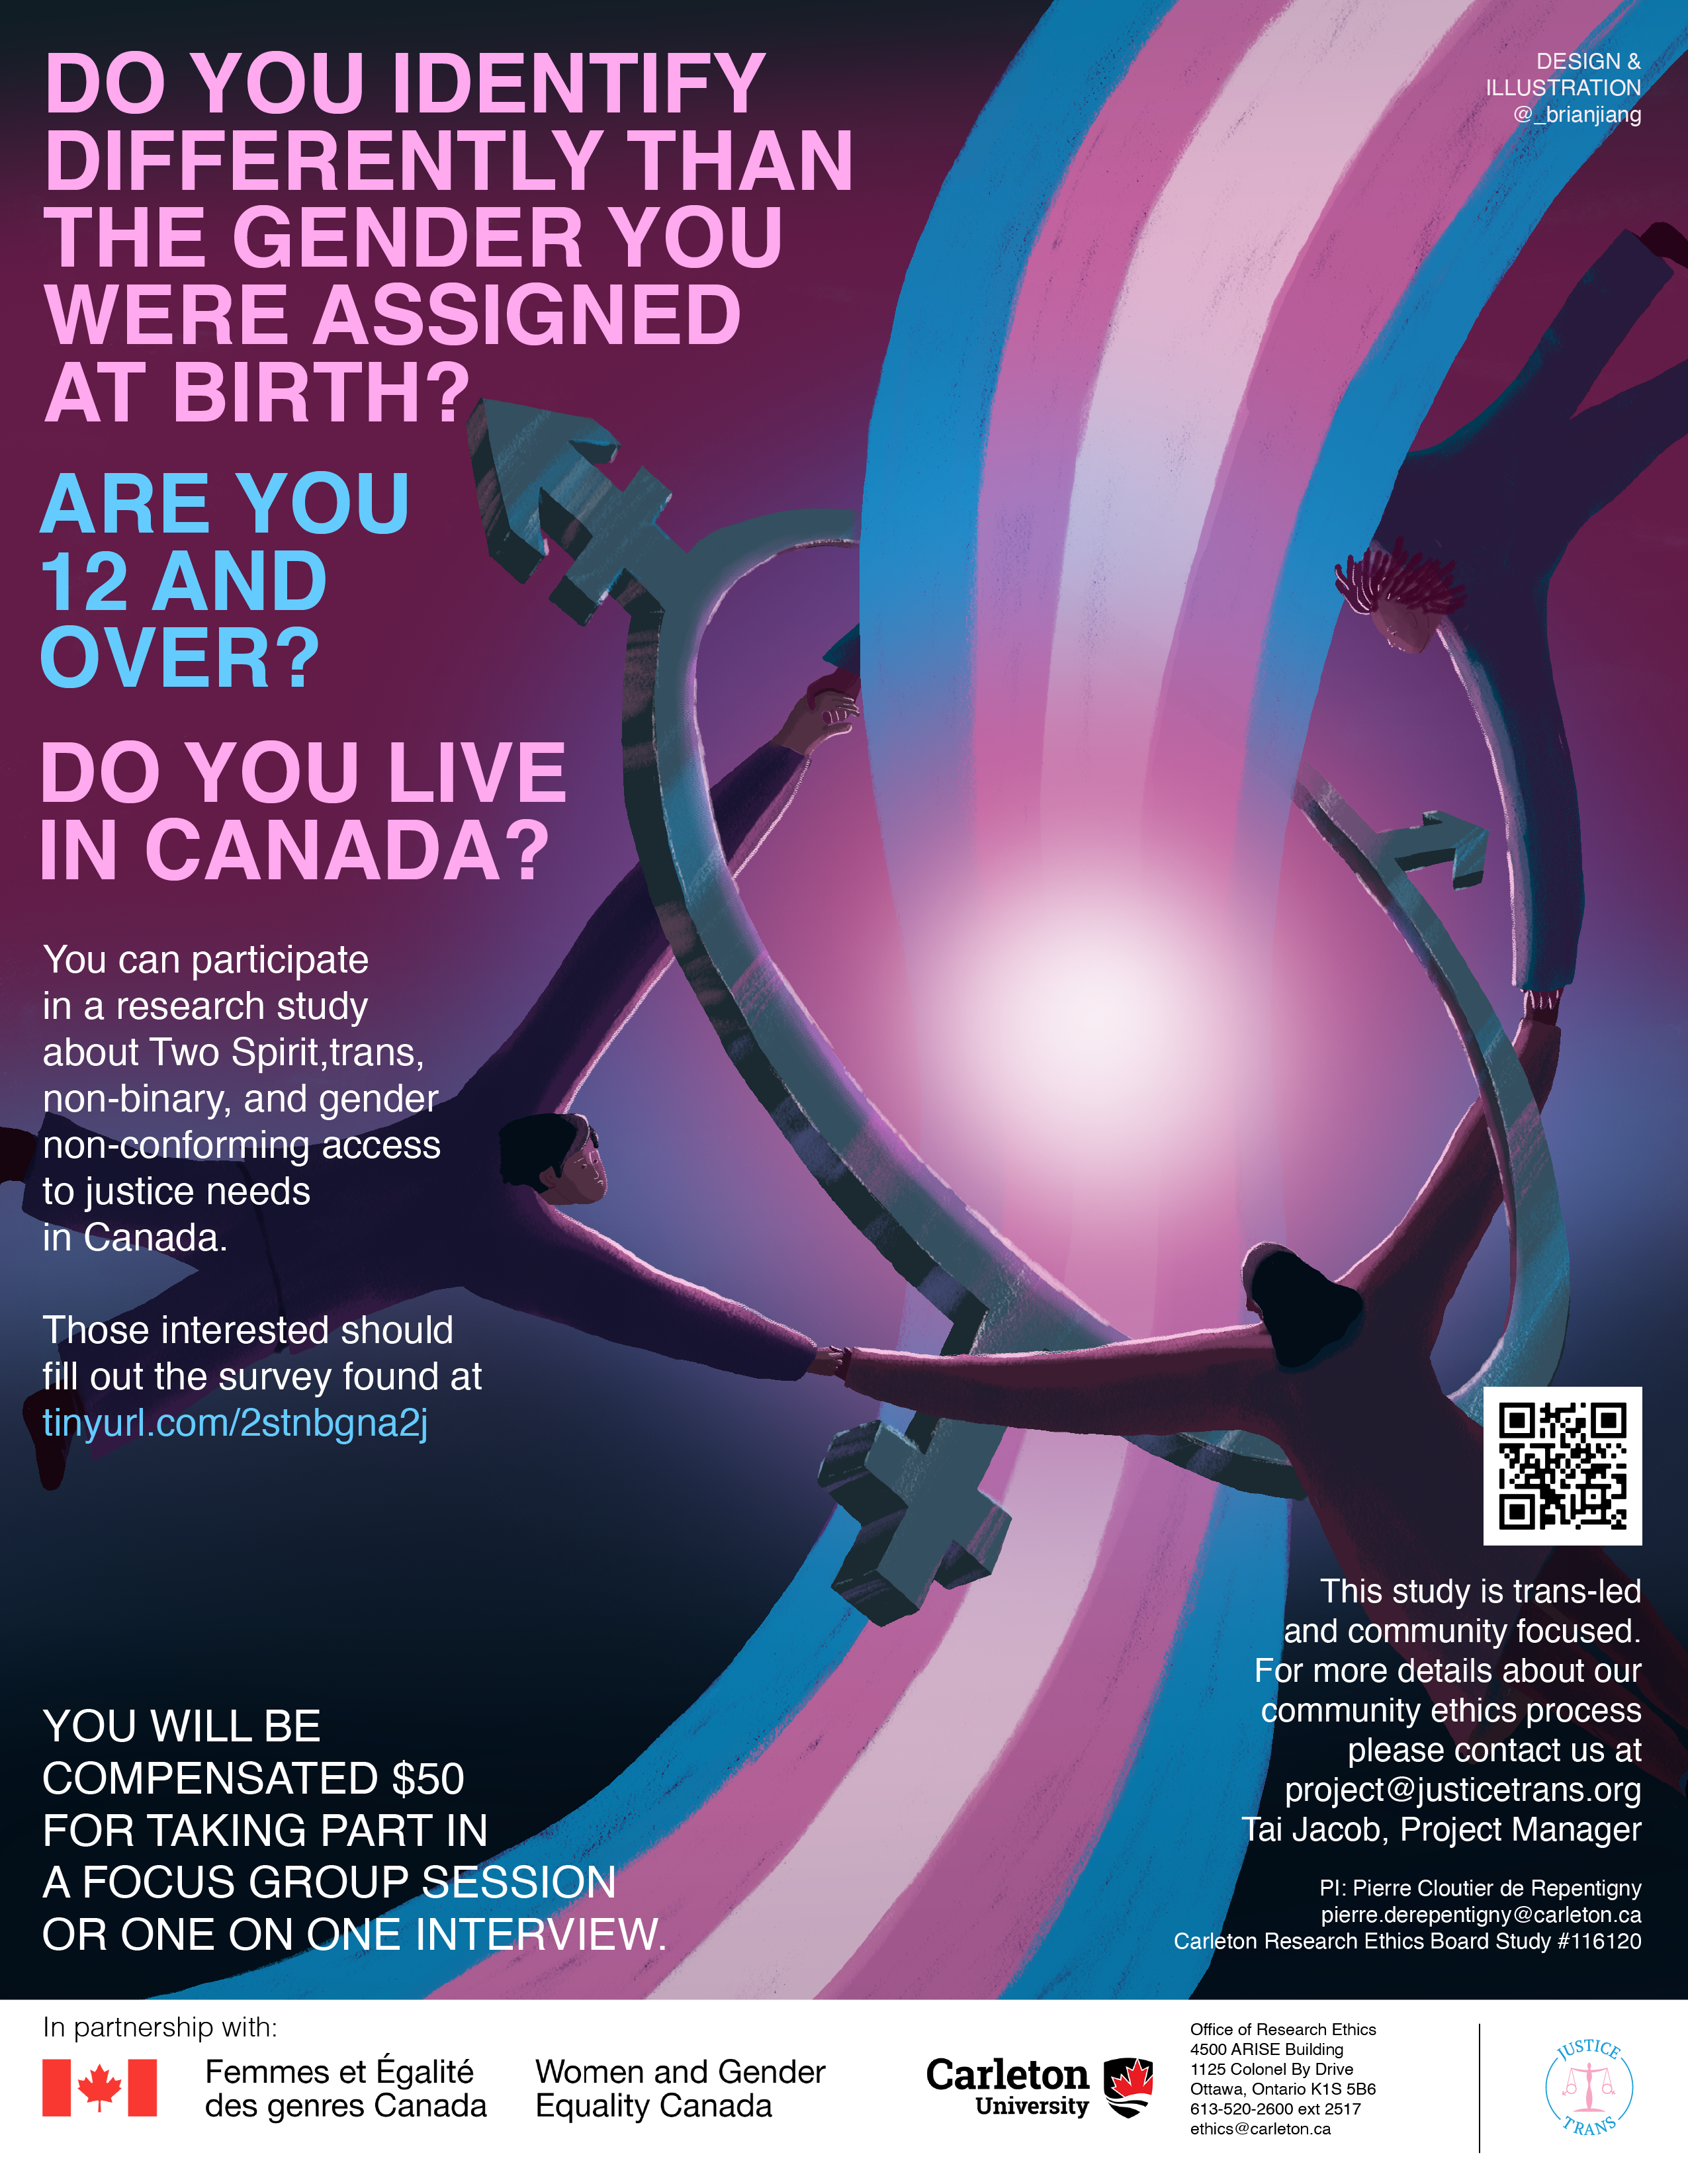 """Poster with a dark gradient pink and blue background. Left-aligned text in the top left corner in pink reads """"Do you identify differently than the gender you were assigned at birth?"""" followed by text in blue reading """"Are you 12 and over?"""" followed once more by pink text reading """"Do you live in Canada?"""" Below this is smaller white text reading """"You can participate in a research study about Two Spirit, trans, non-binary, and gender non-conforming access to justice needs in Canada."""" After a space, further white text reads """"Those interested should fill out the survey found at tinyurl.com/2stnbgna2j."""" The bottom right corner has white text reading """"You will be compensated $50 for taking part in a focus group session or a one on one interview,"""" and the bottom left corner has a QR code leading to the same site as the link, with white text below that reading """"This study is trans-led and community focused. For more details about our community ethics process please contact us at project@justicetrans.org."""" The image on the poster shows the trans flag, curved, stretching from the bottom left corner to the top right corner. A dark grey trans symbol (a ring with a cross, an arrow, and a cross and an arrow combined) circles around the flag as a ring, with three people holding hands also encircling the flag and the symbol. In the centre of the symbol is a bright white glare. At the bottom of the poster is a white band with black text reading """"In partnership with:"""" followed by the logos of Women and Gender Equality Canada, Carleton University, and JusticeTrans (in order from left to right)."""